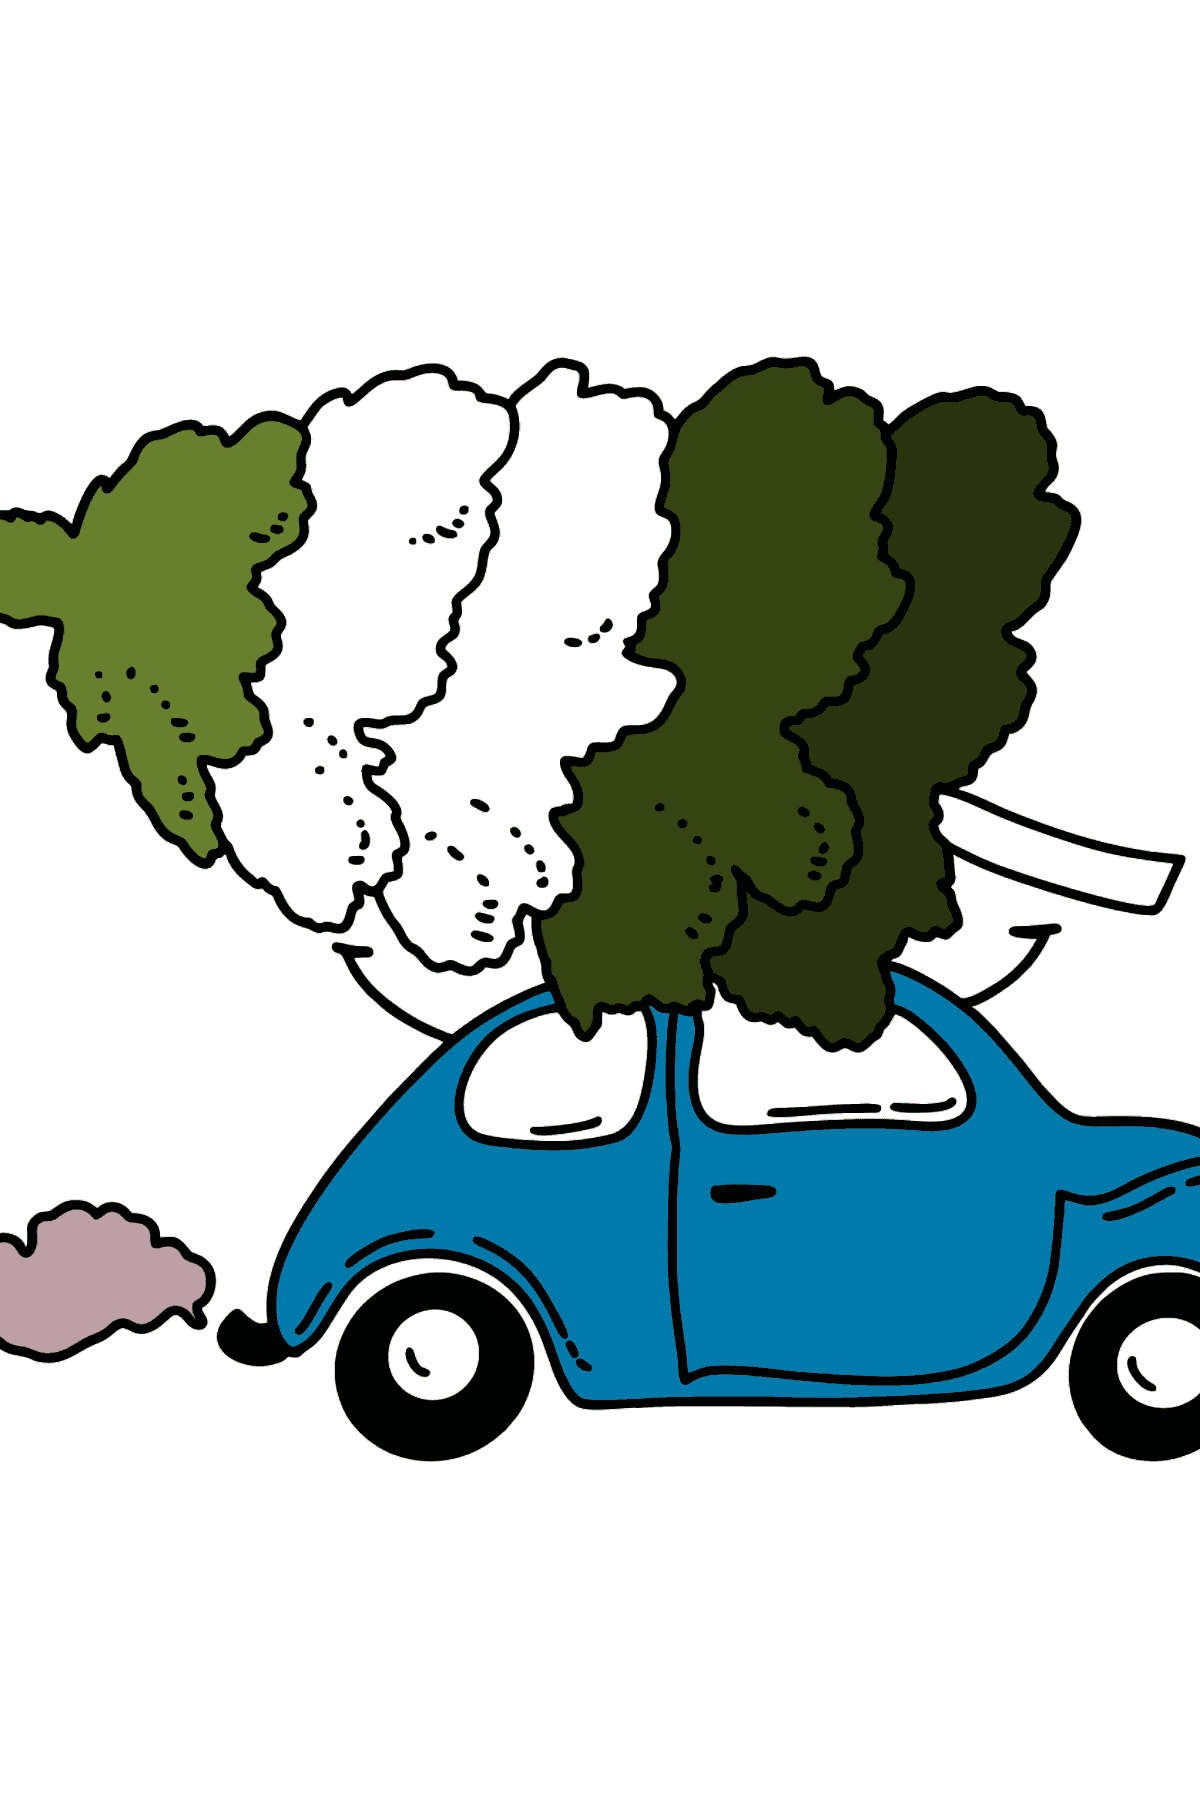 Coloring page - Christmas tree on the car - Coloring Pages for Kids